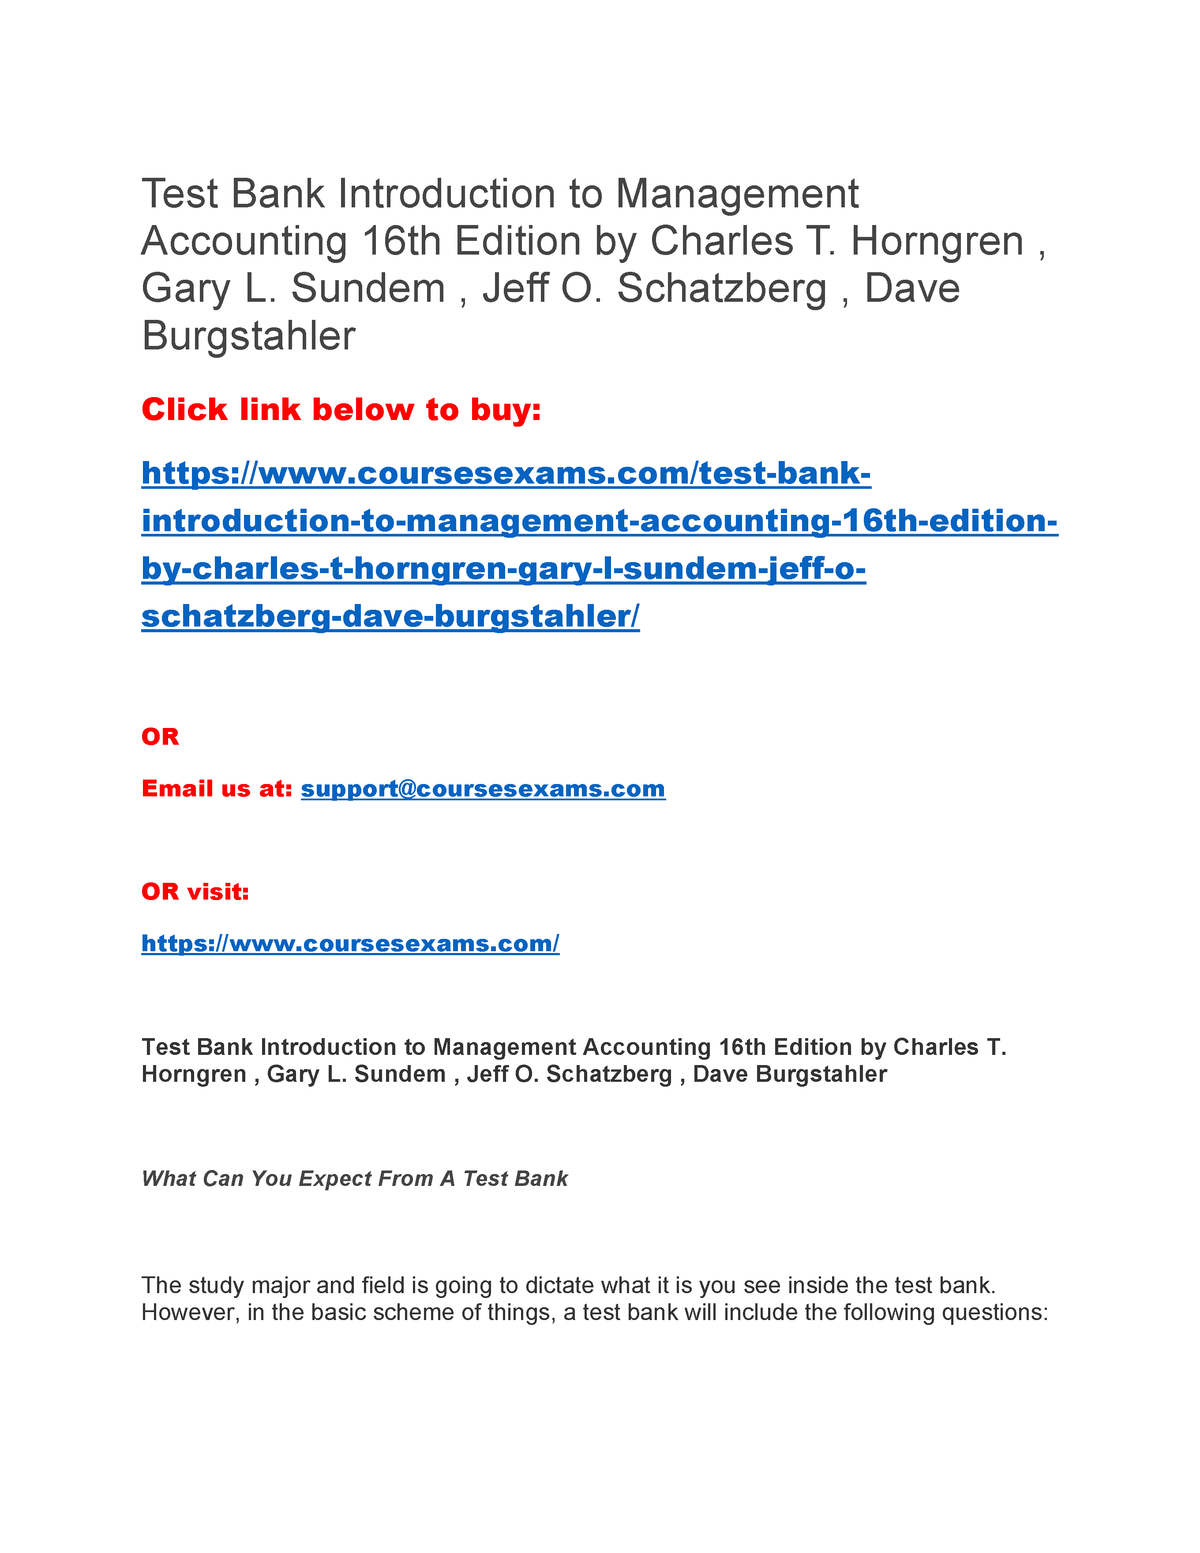 introduction to management accounting horngren 16th edition pdf